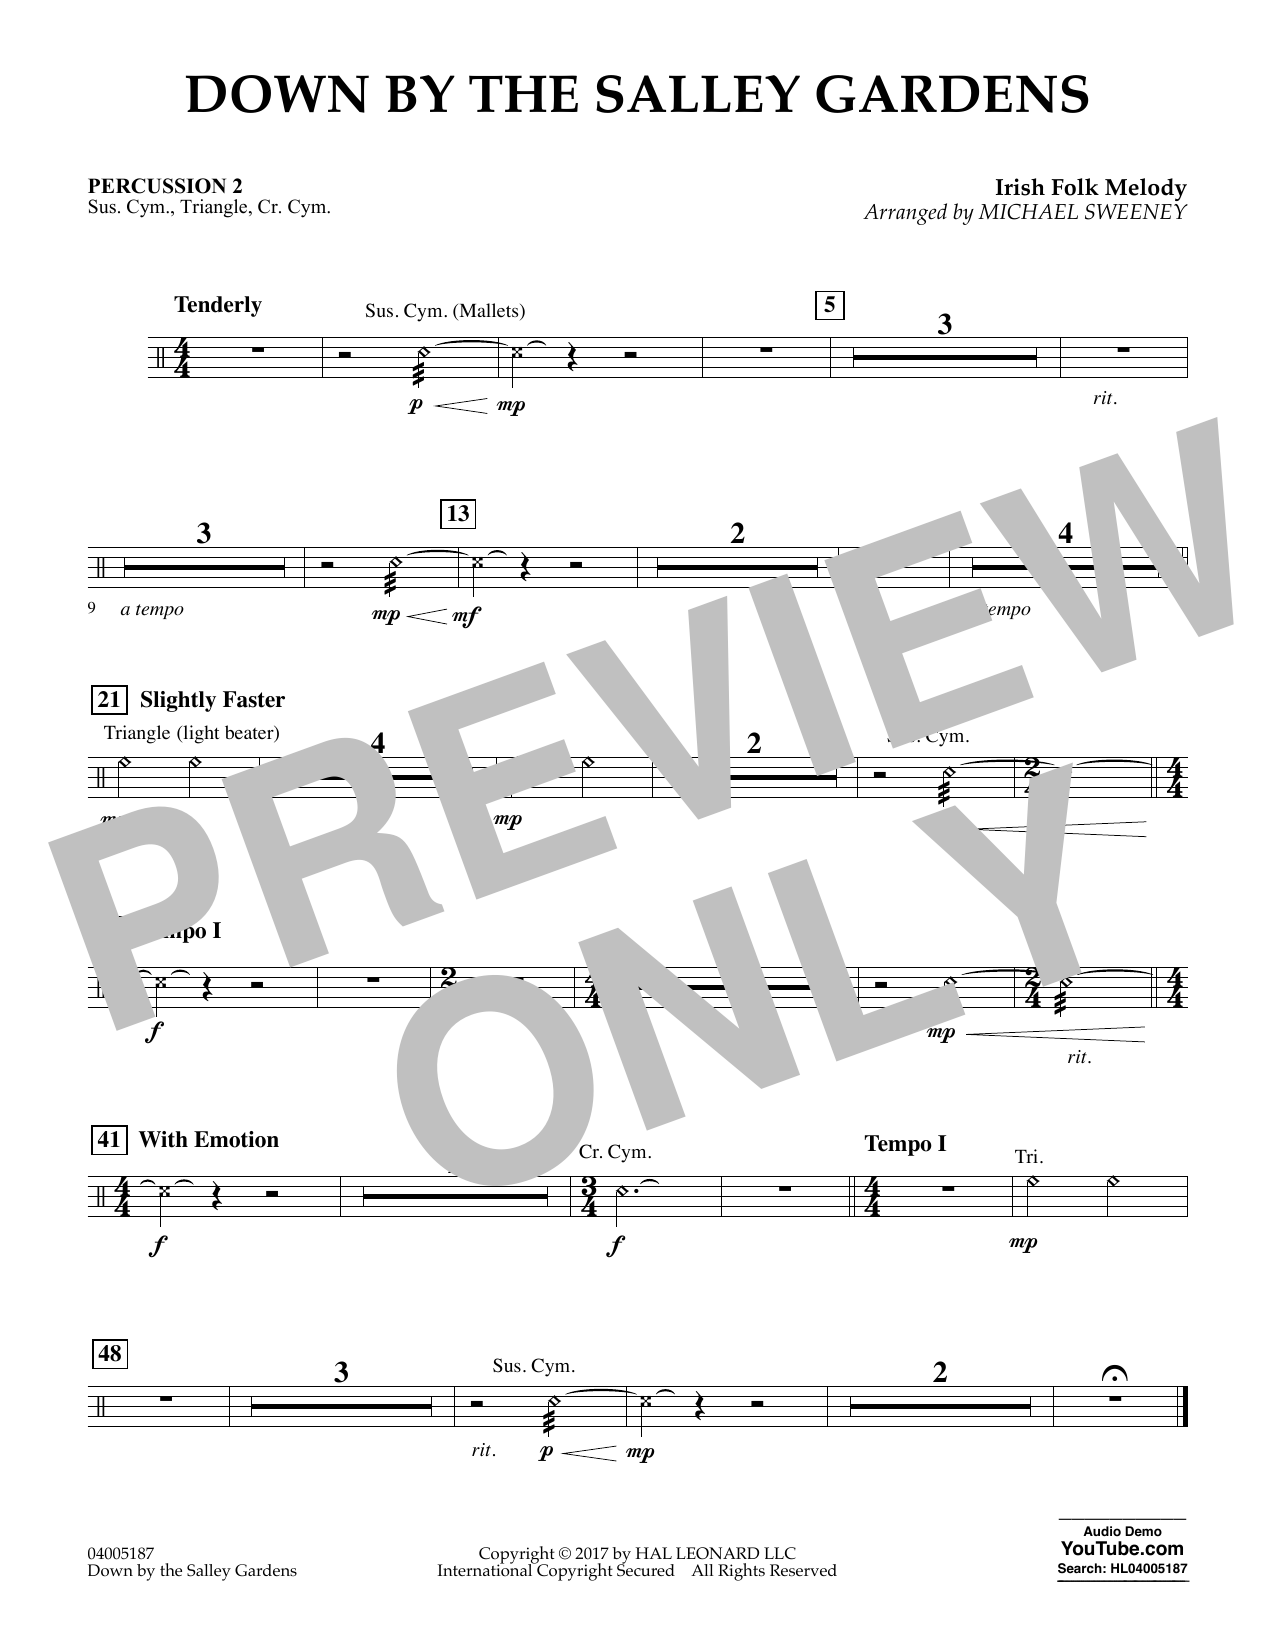 Down by the Salley Gardens - Percussion 2 (Flex-Band)